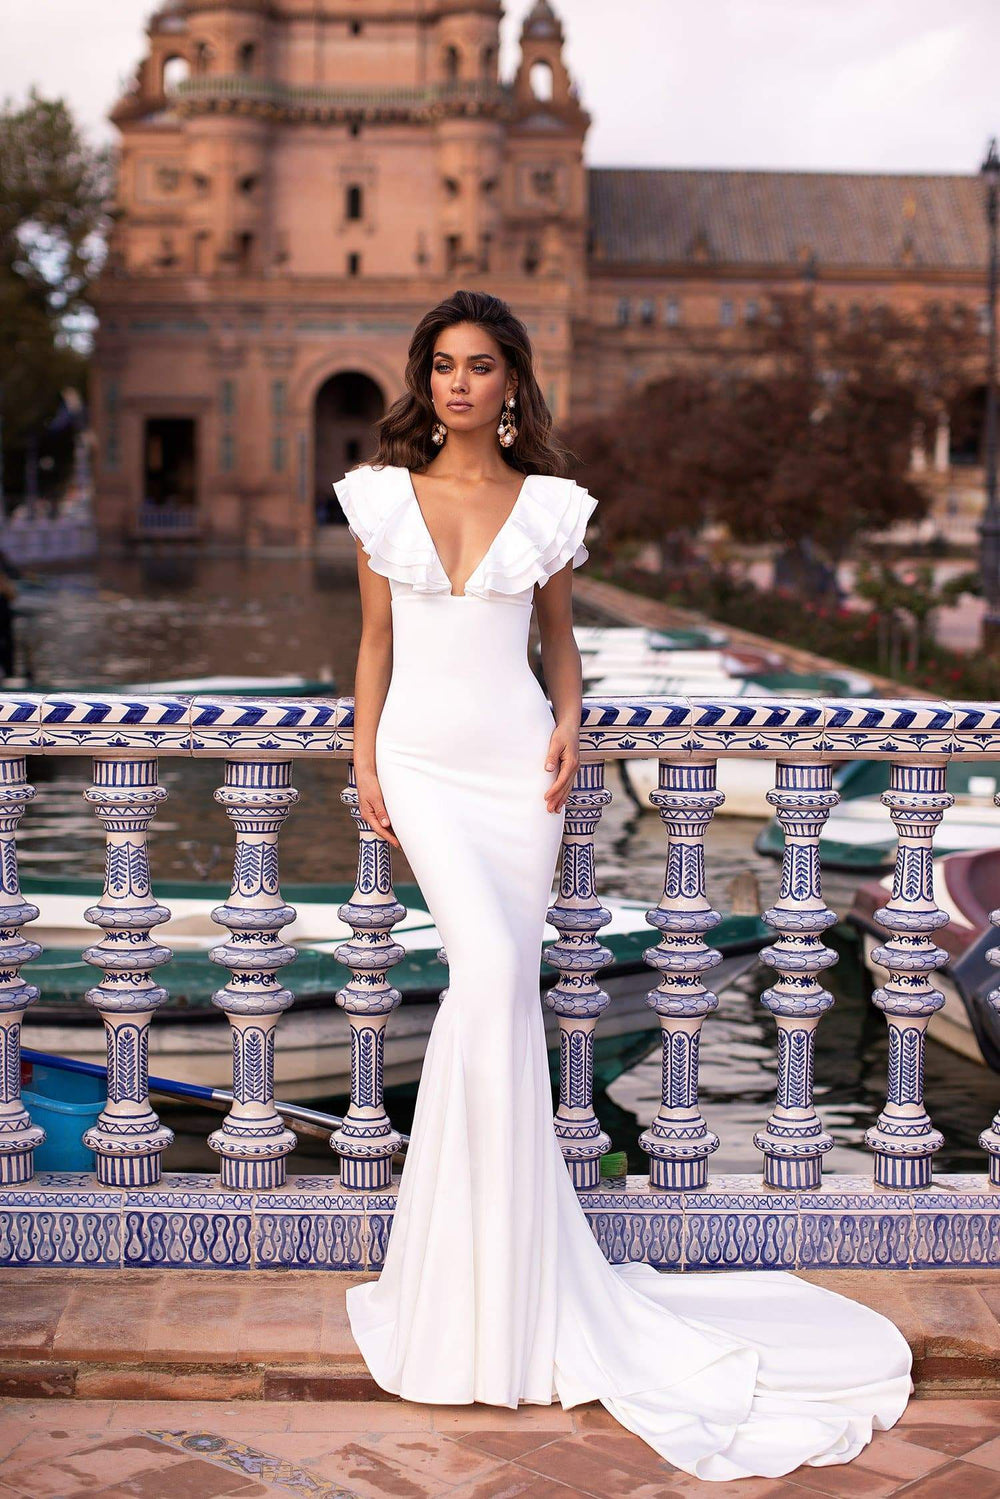 Rosaria - White Mermaid Gown with Frilly Bustier, Plunge Neck & Train